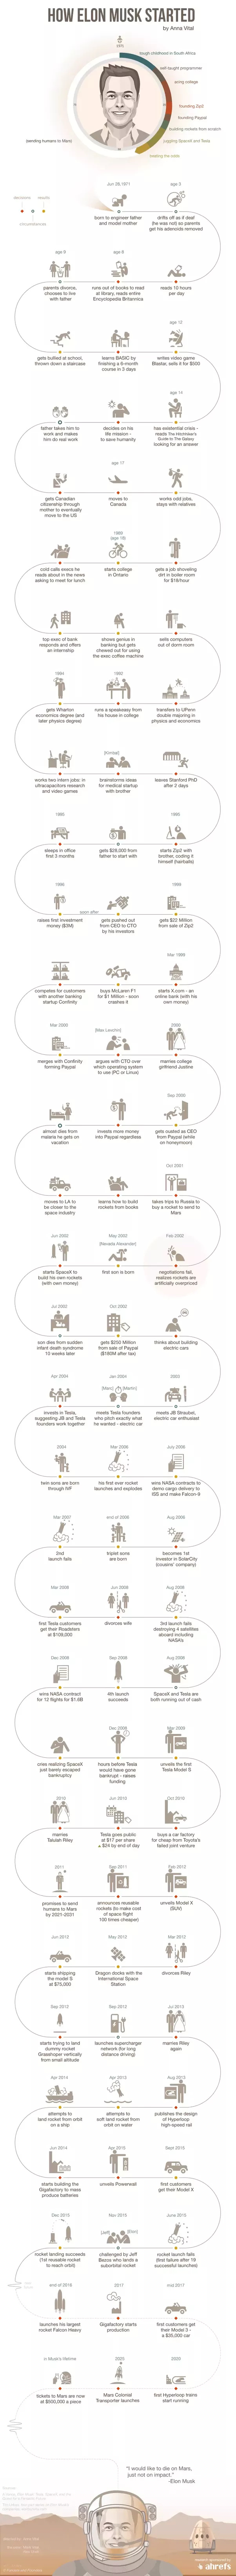 Source :  How Elon Musk Started   Infographic (Must READ)  Elon Musk Resume